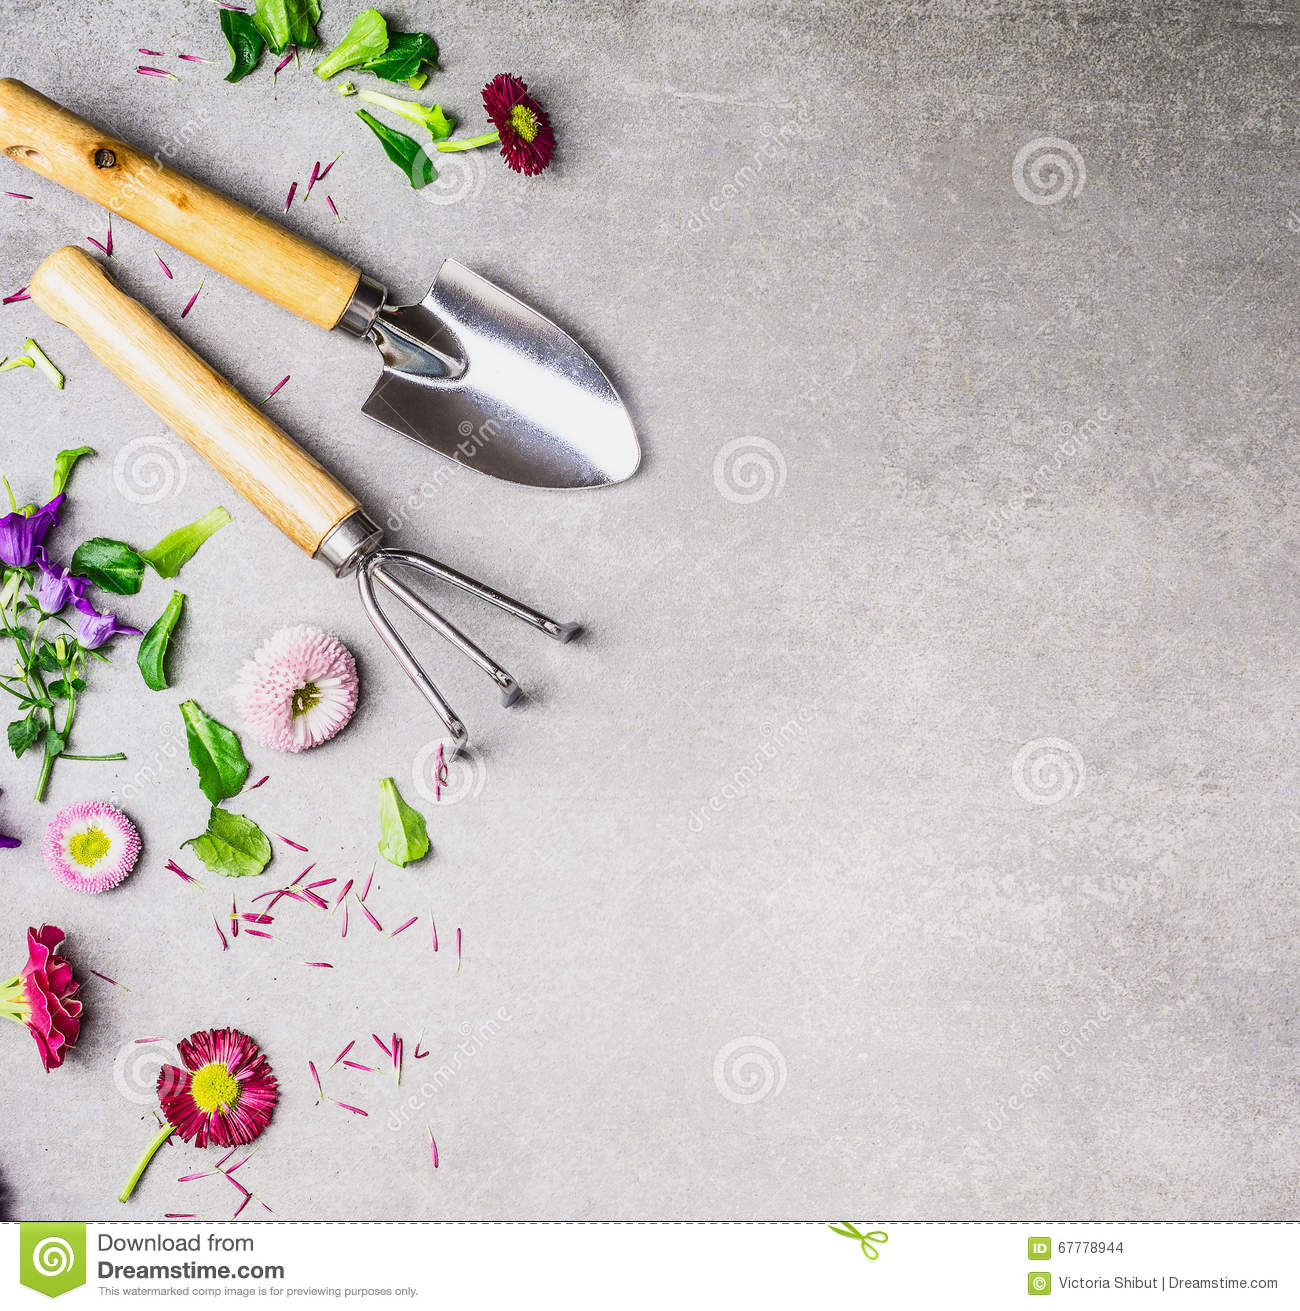 Gardening tools and flowers plant on gray stone background for Gardening tools victoria